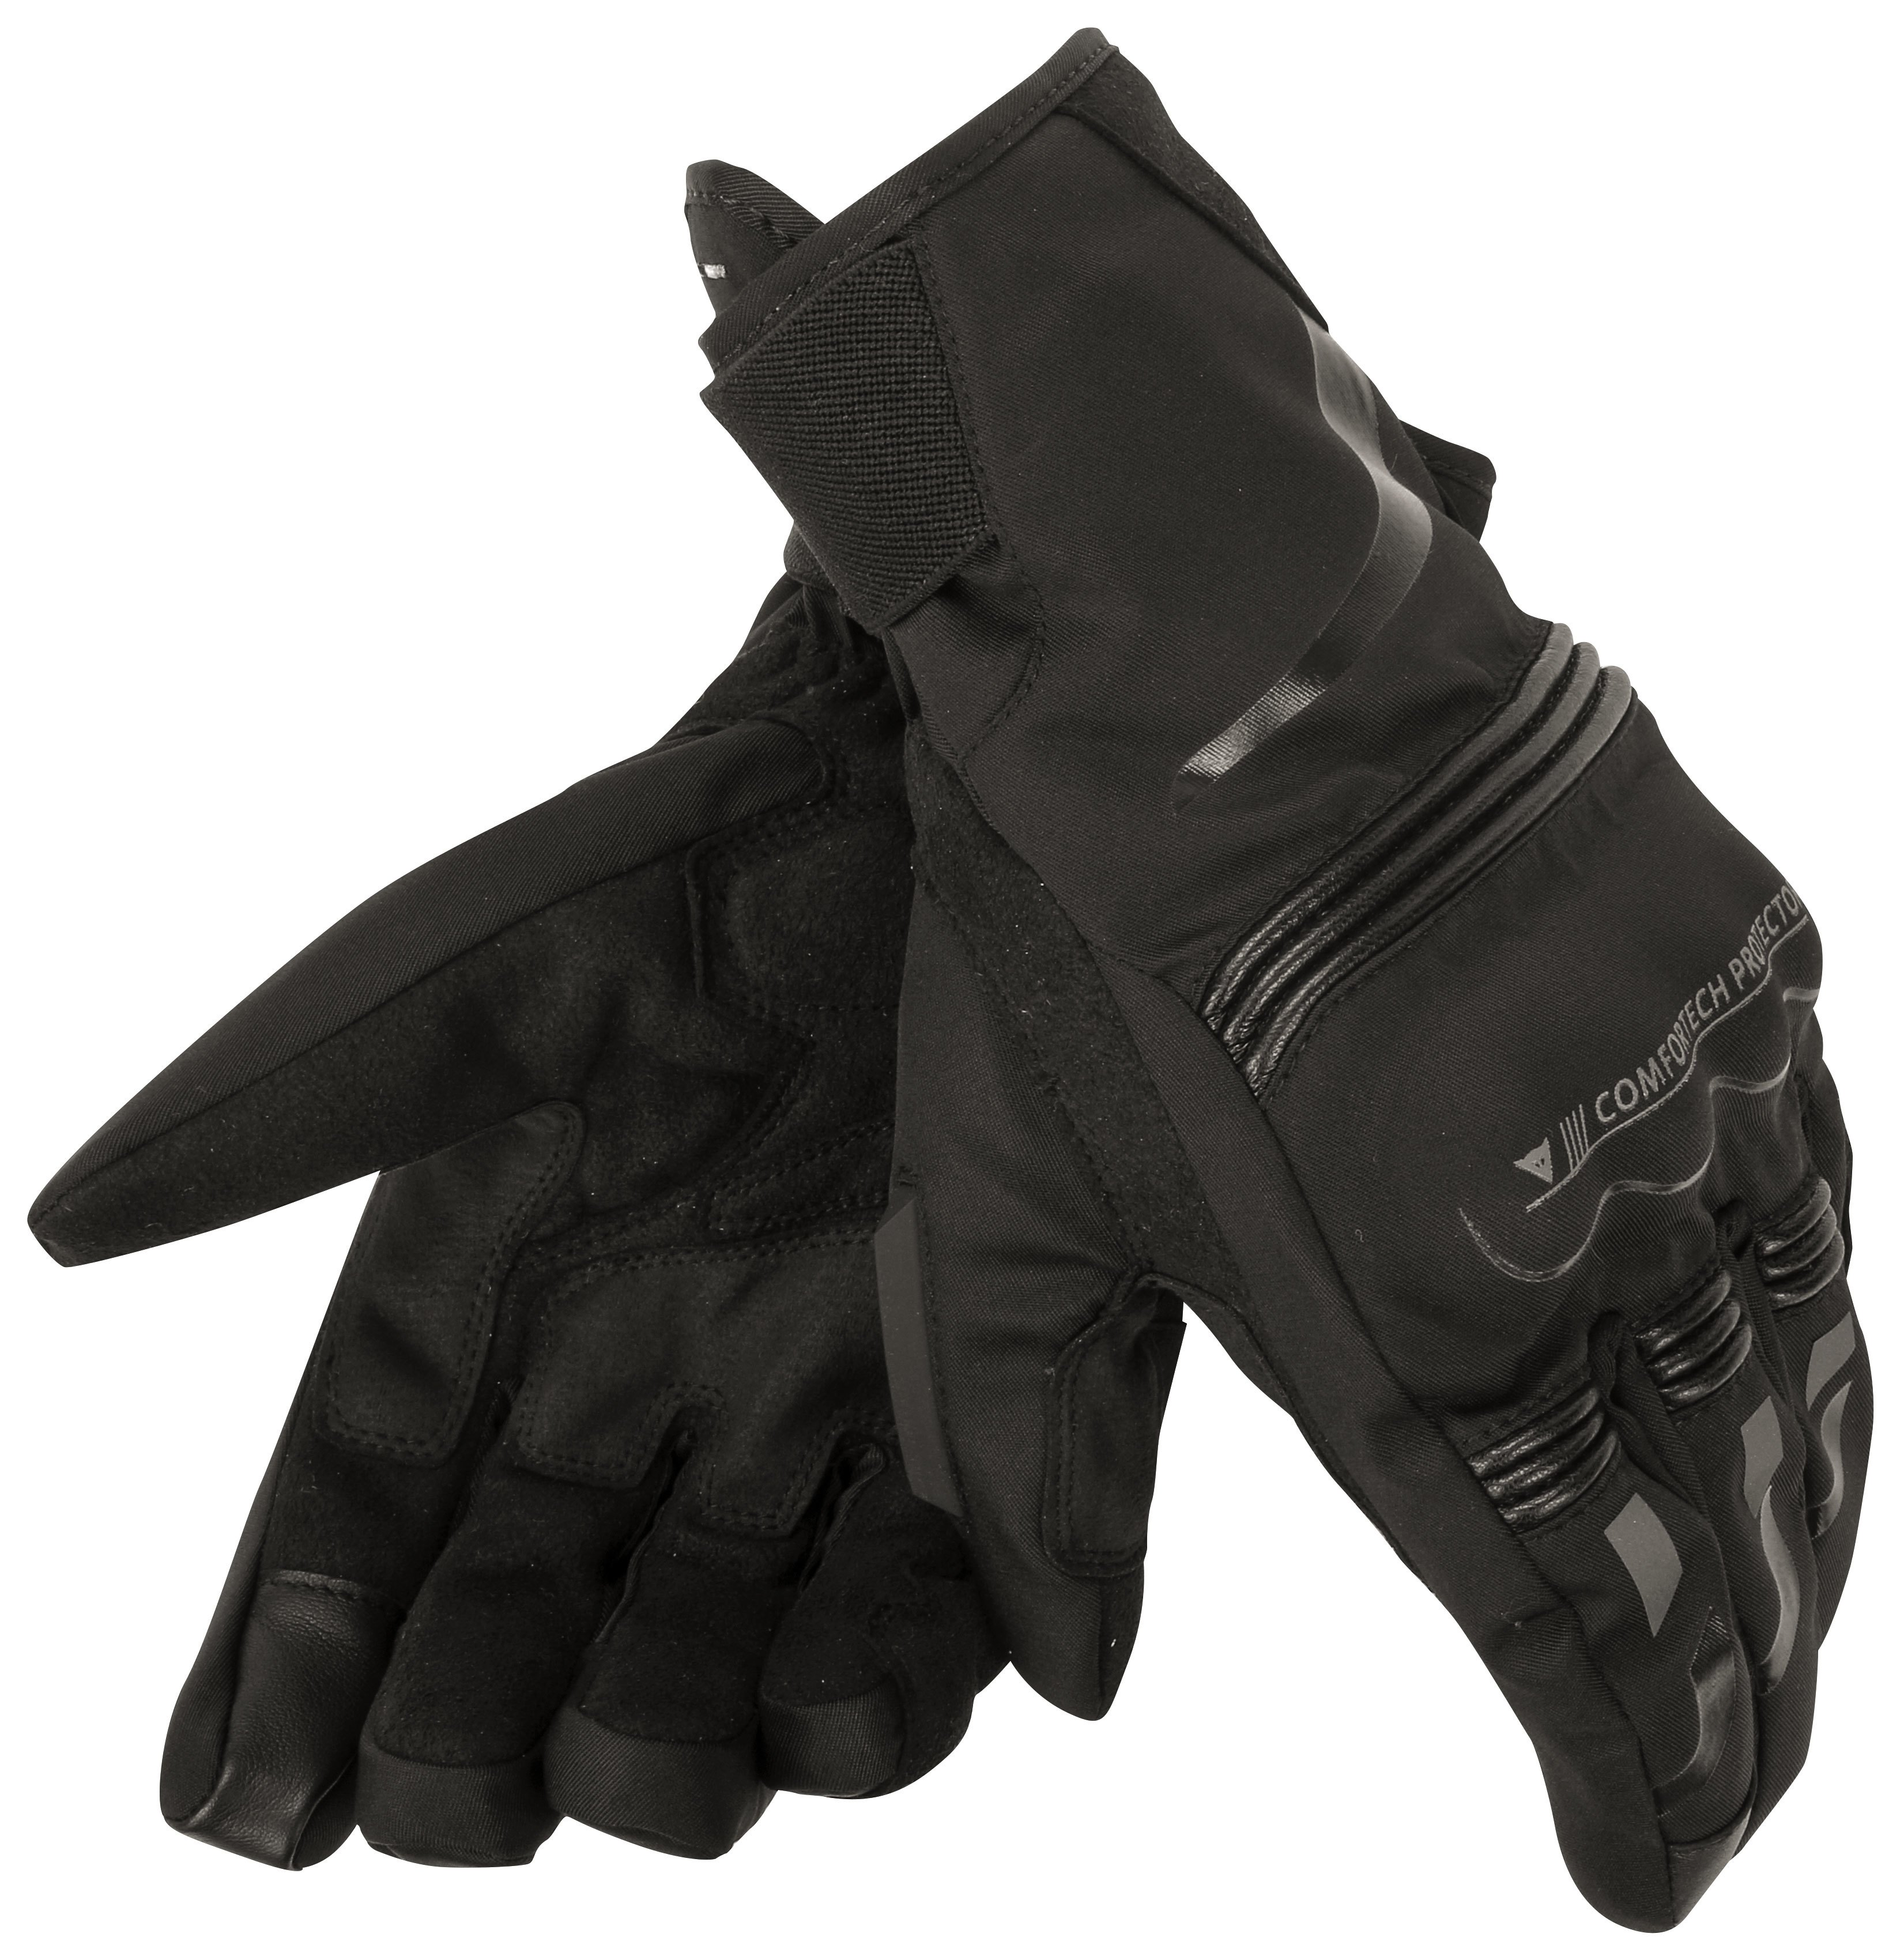 Dainese tempest d dry short gloves revzilla for D garage dainese corbeil horaires